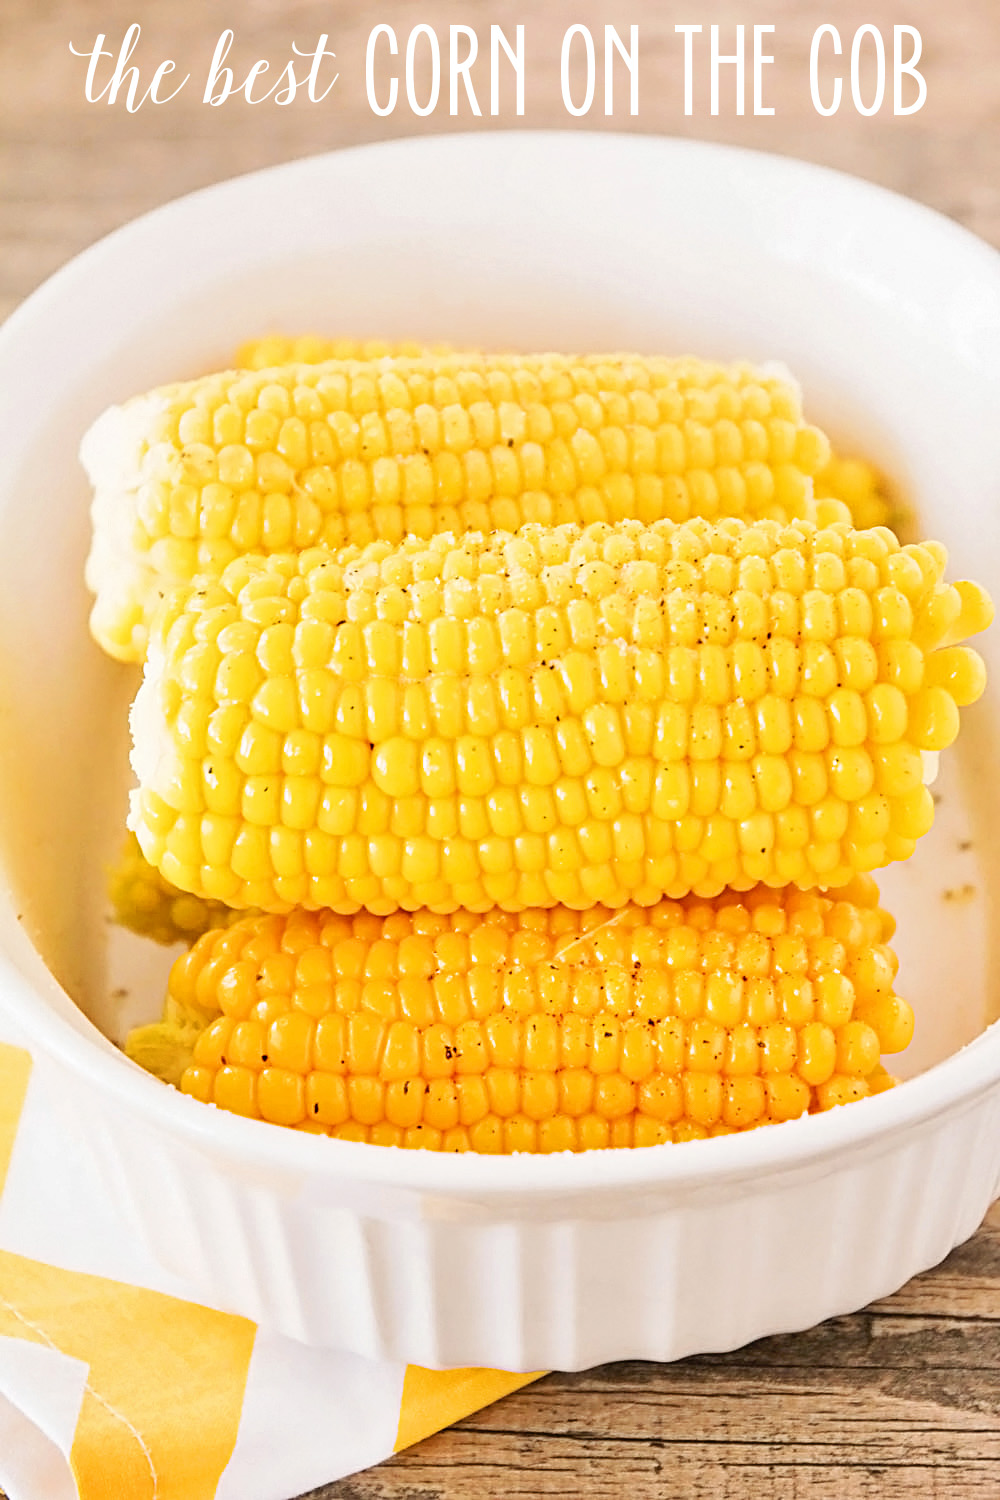 This tender and buttery corn on the cob is so delicious and ready in 10 minutes!